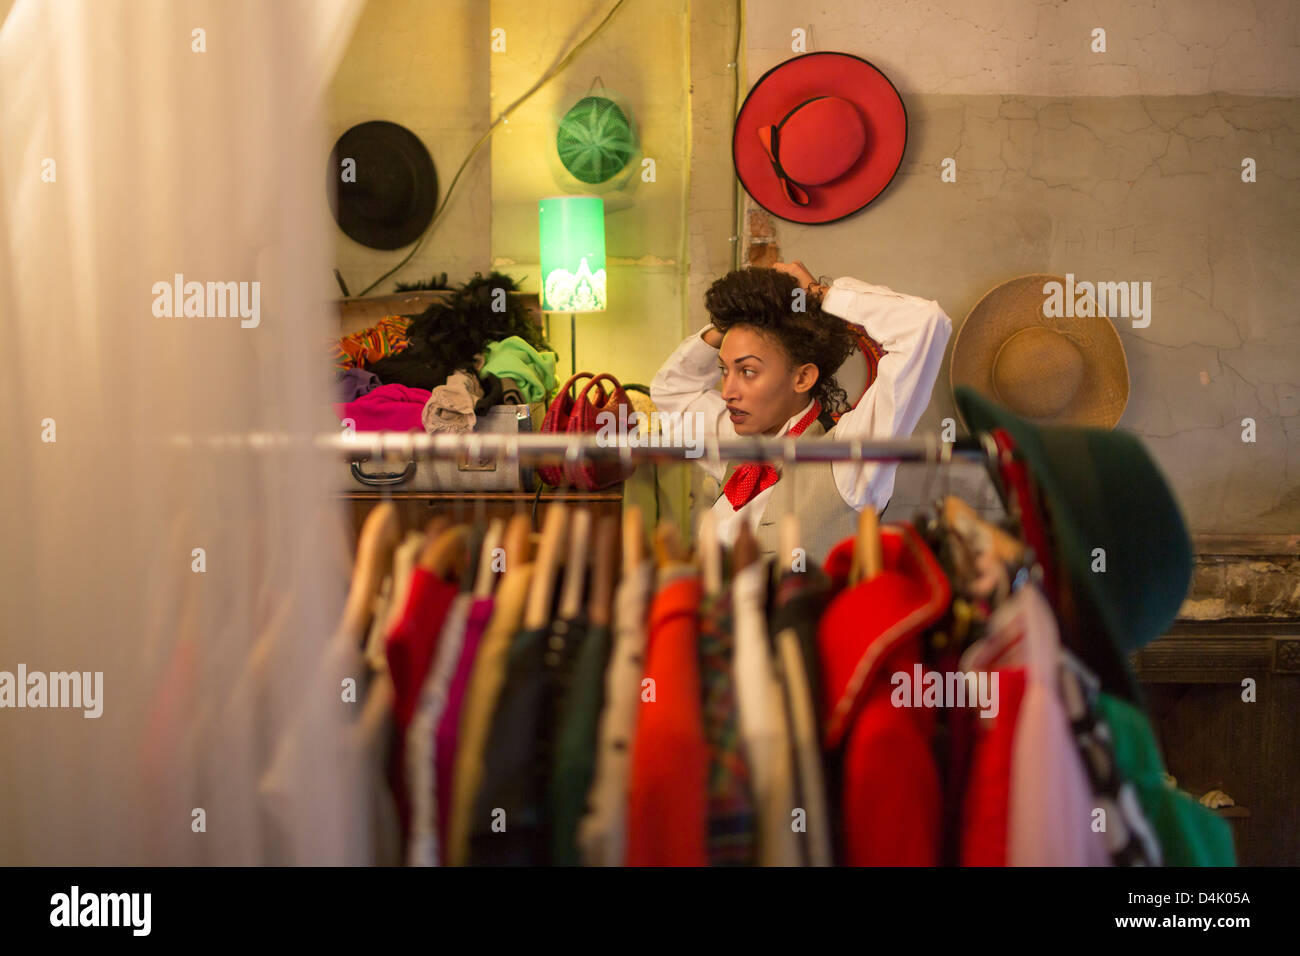 Woman shopping in clothes shop - Stock Image